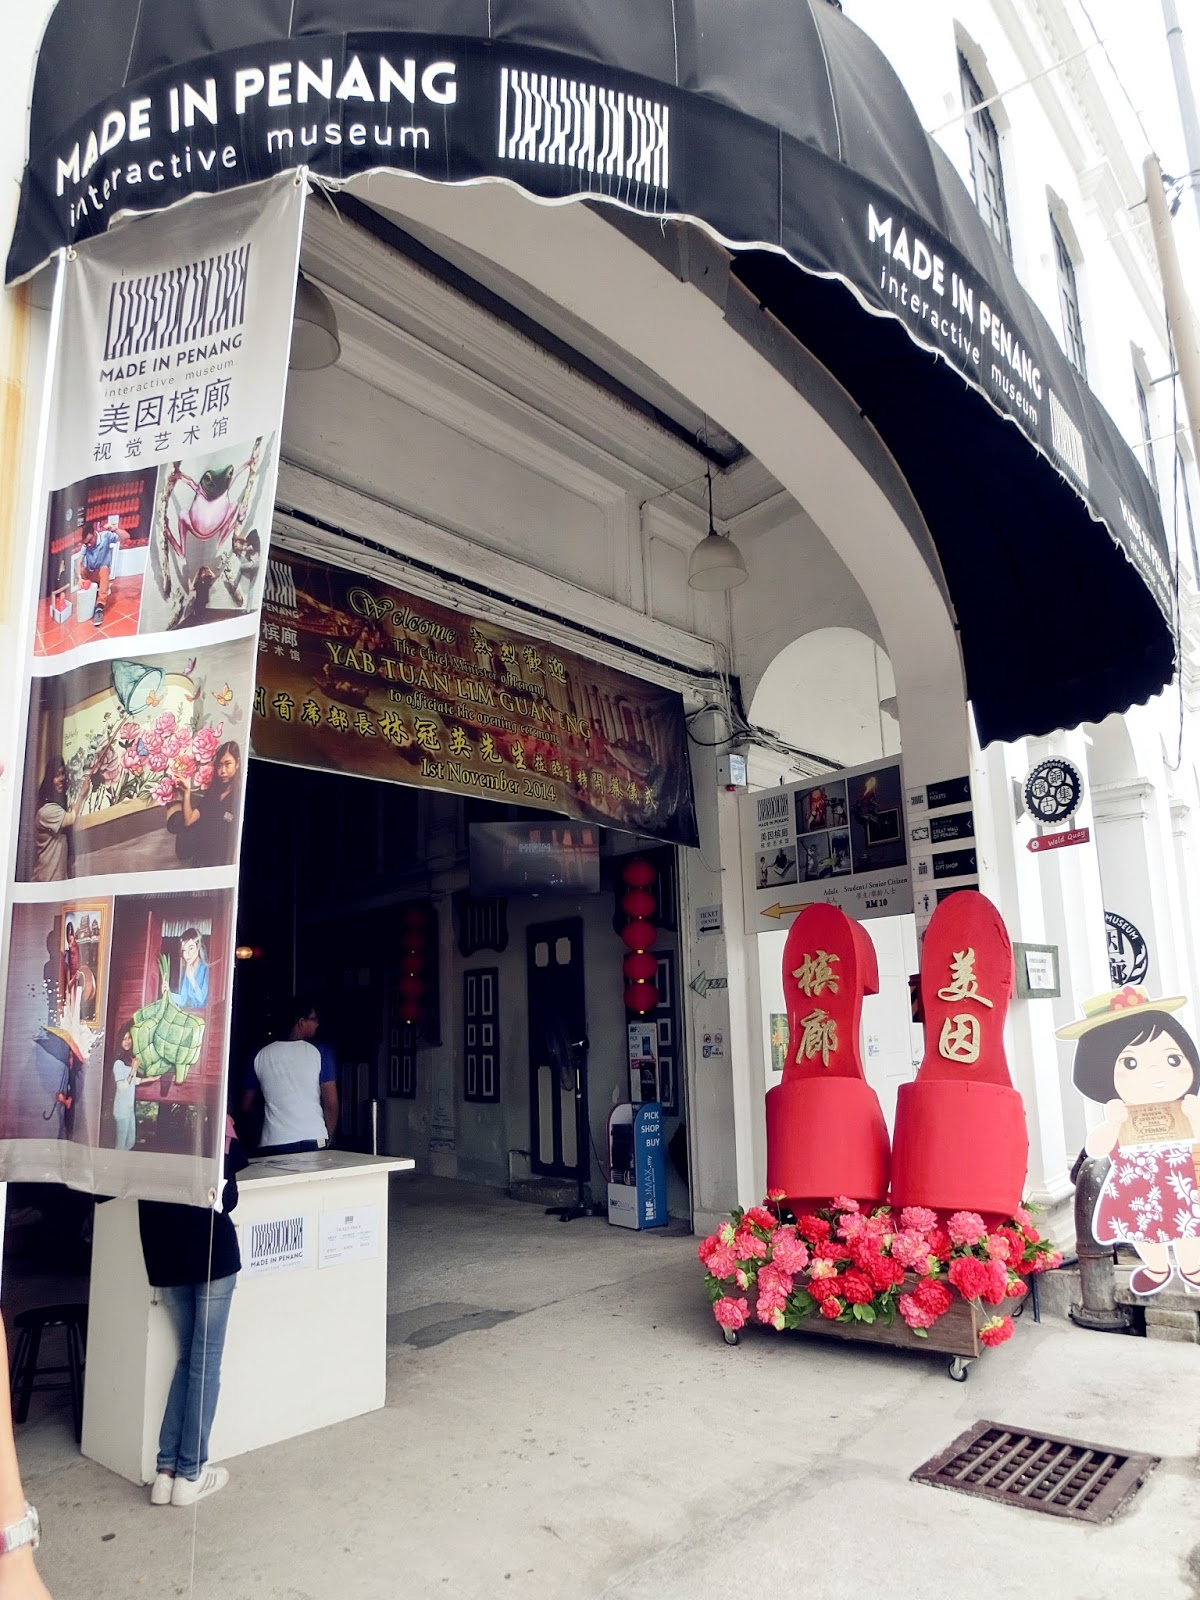 place for dating in penang